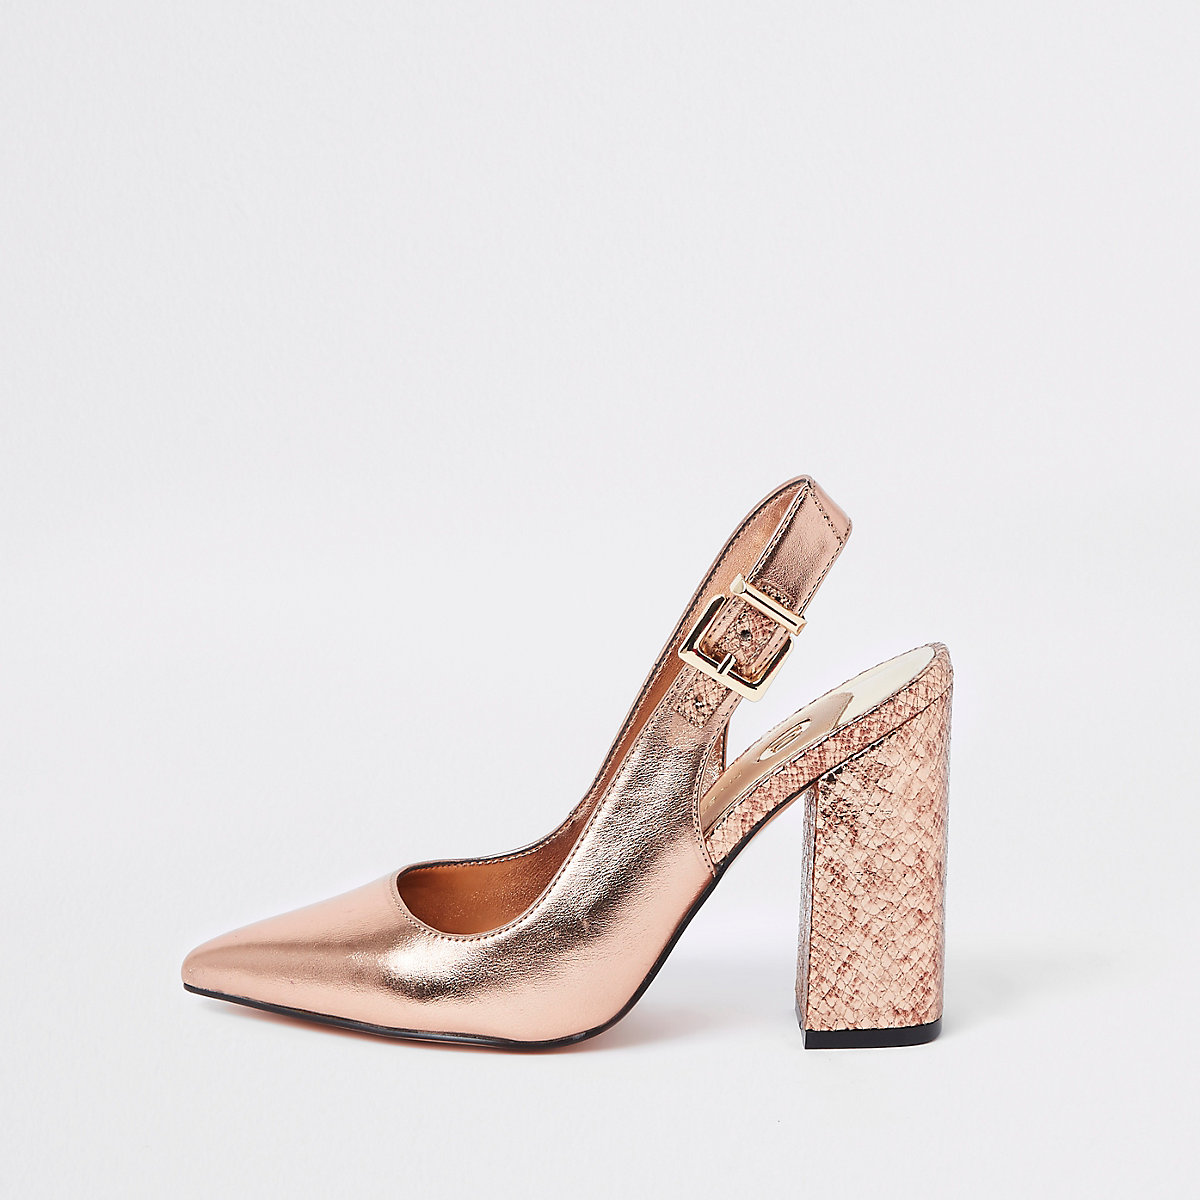 Bright Sling Heel Shoes Block Court Back Gold 0wrHq0